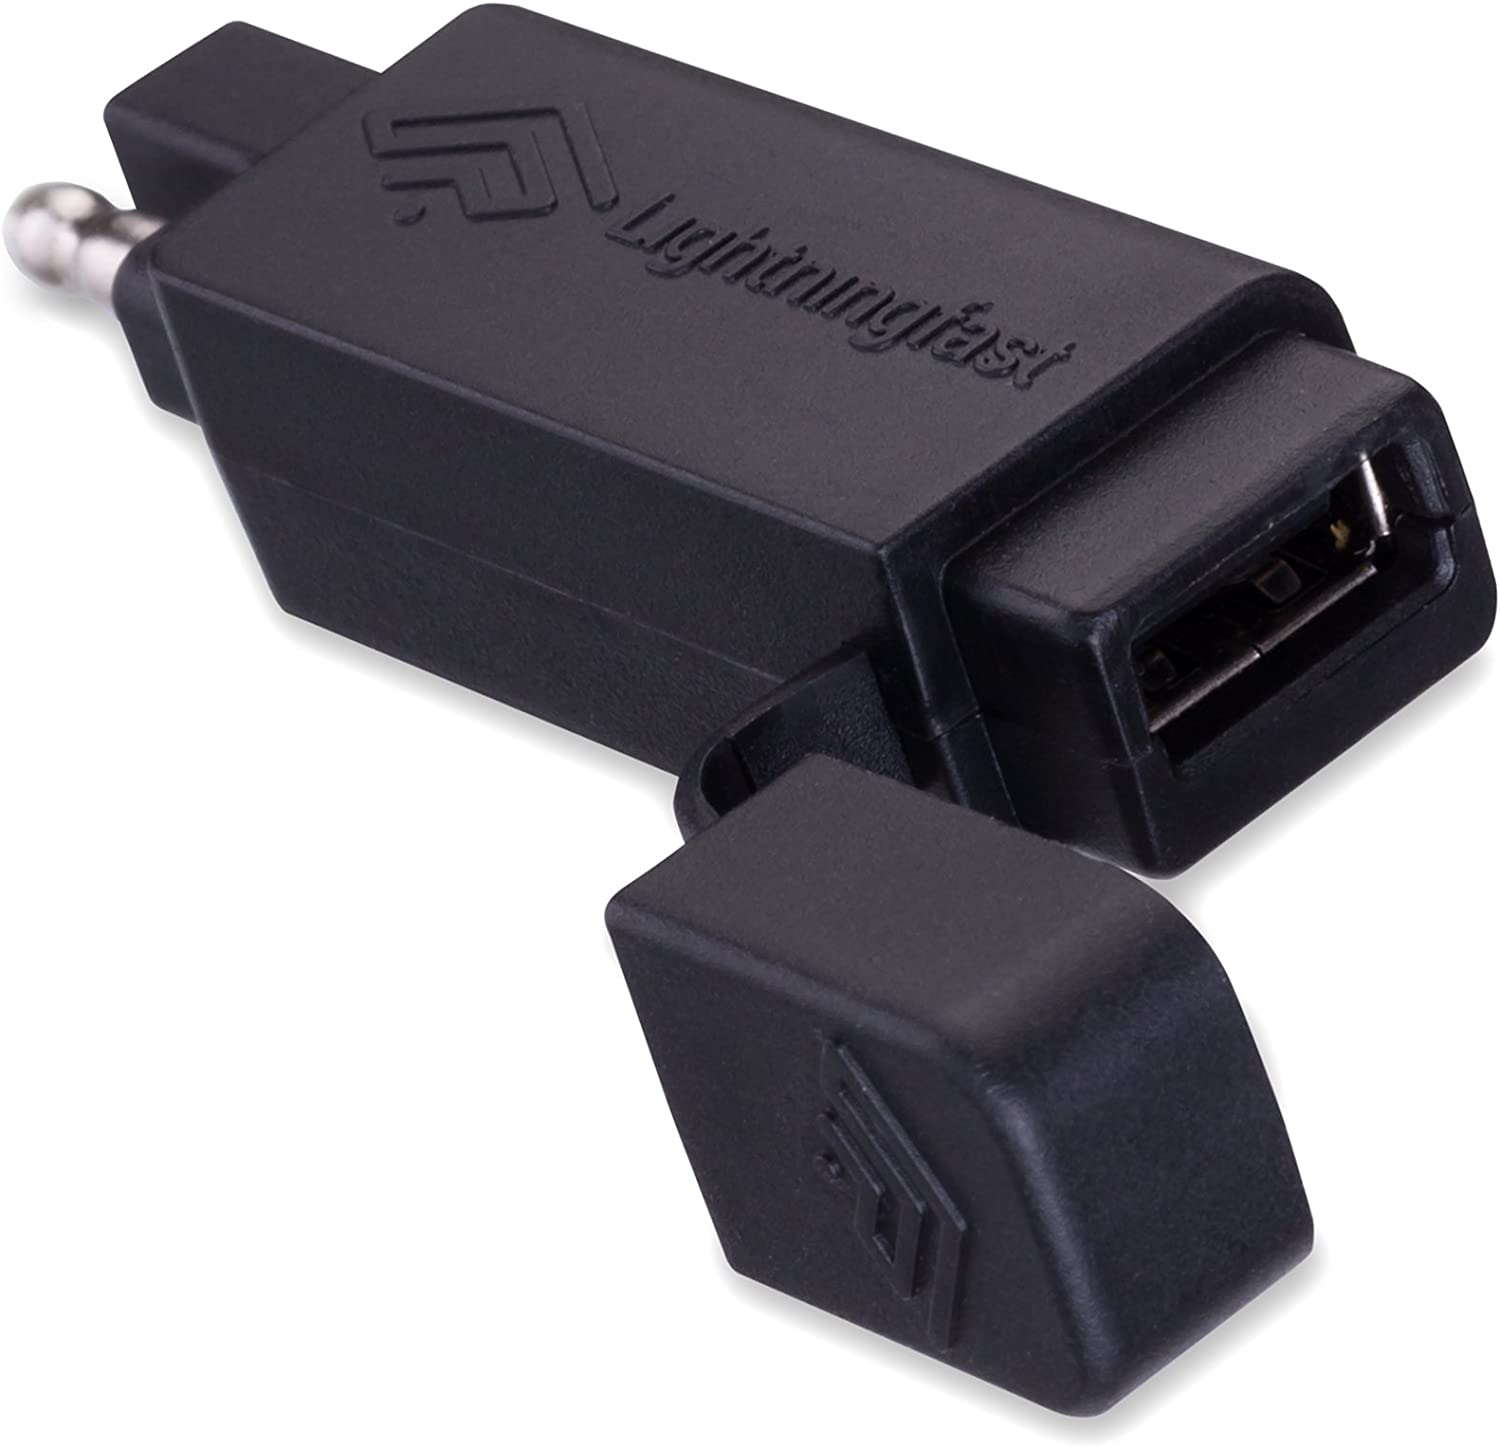 SAE to USB Adapter - Motorcycle Quick Disconnect Plug